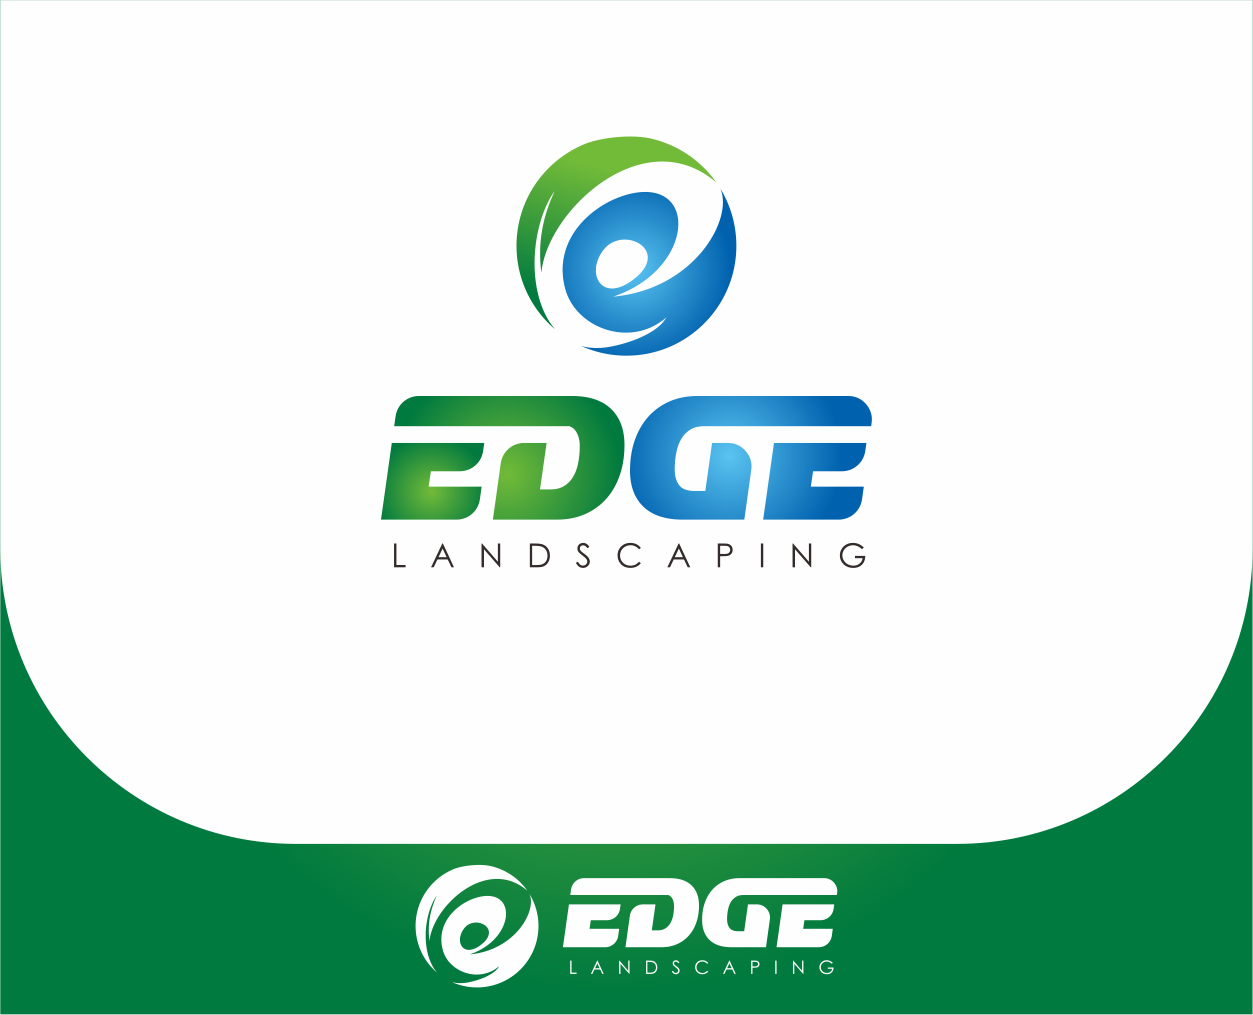 Logo Design by Armada Jamaluddin - Entry No. 229 in the Logo Design Contest Inspiring Logo Design for Edge Landscaping.